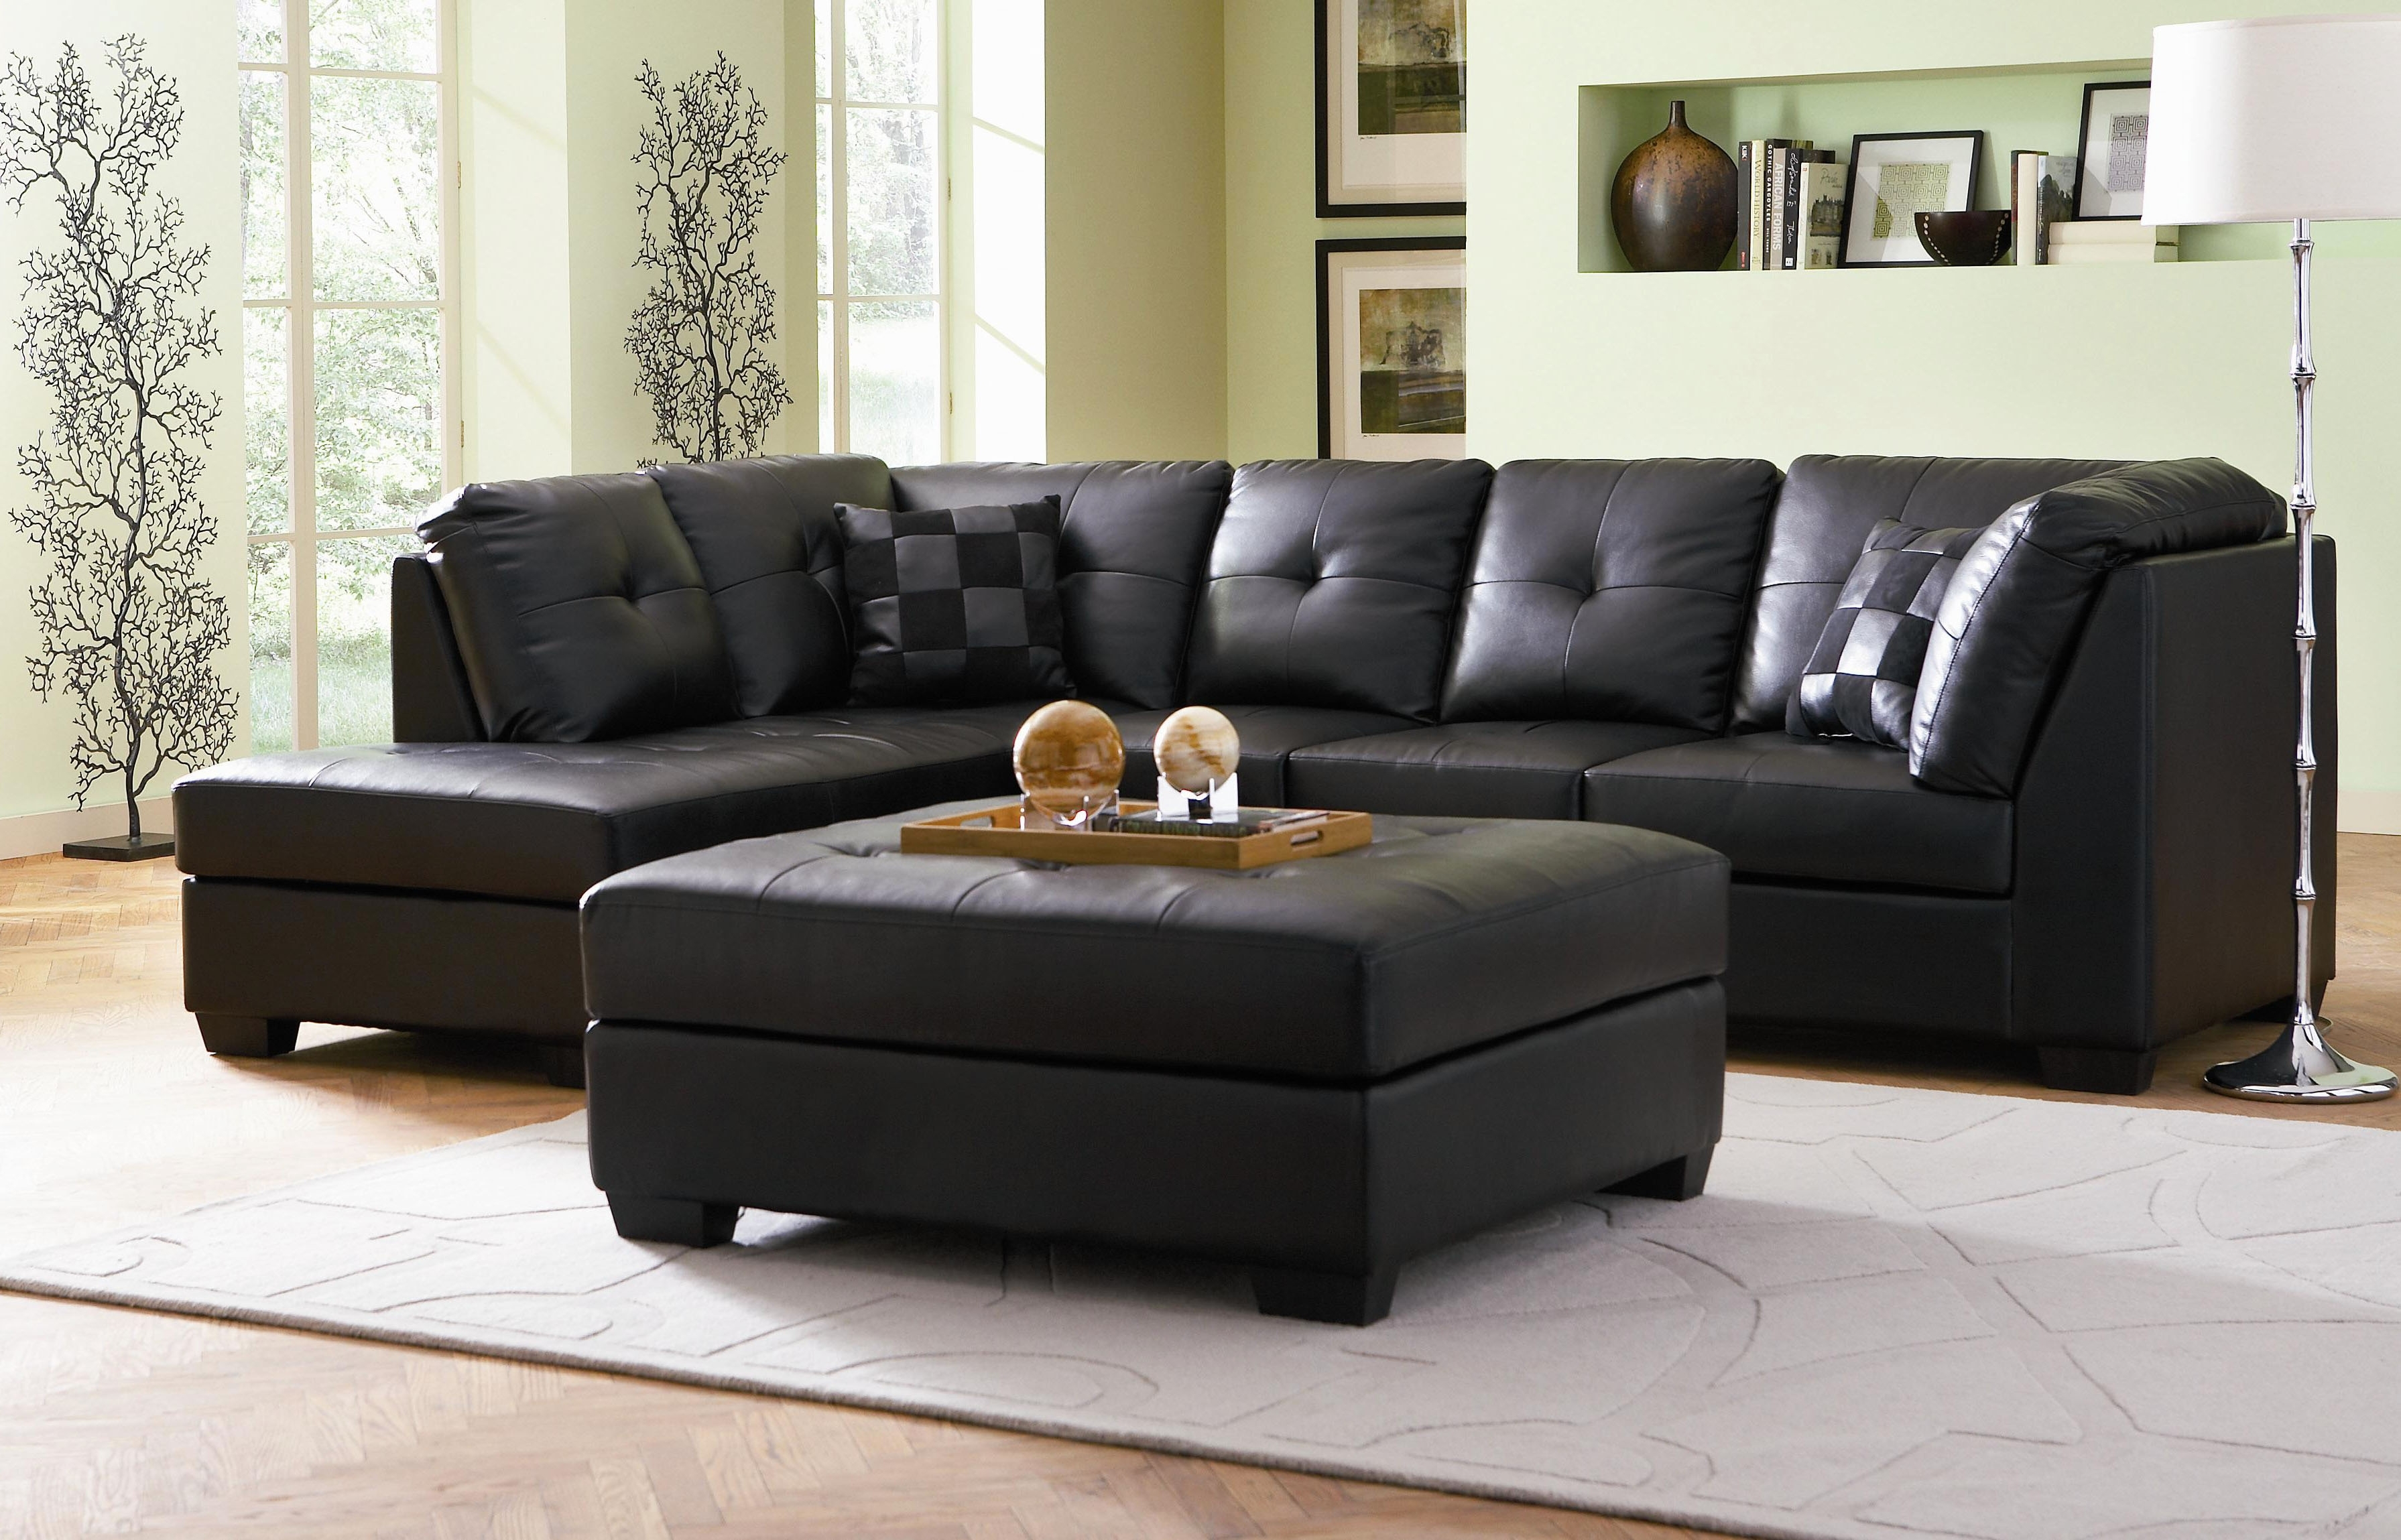 Leather Sectional Sofa For Small Living Room In Black Color With Throughout Leather Sectional Sofas With Ottoman (View 8 of 15)